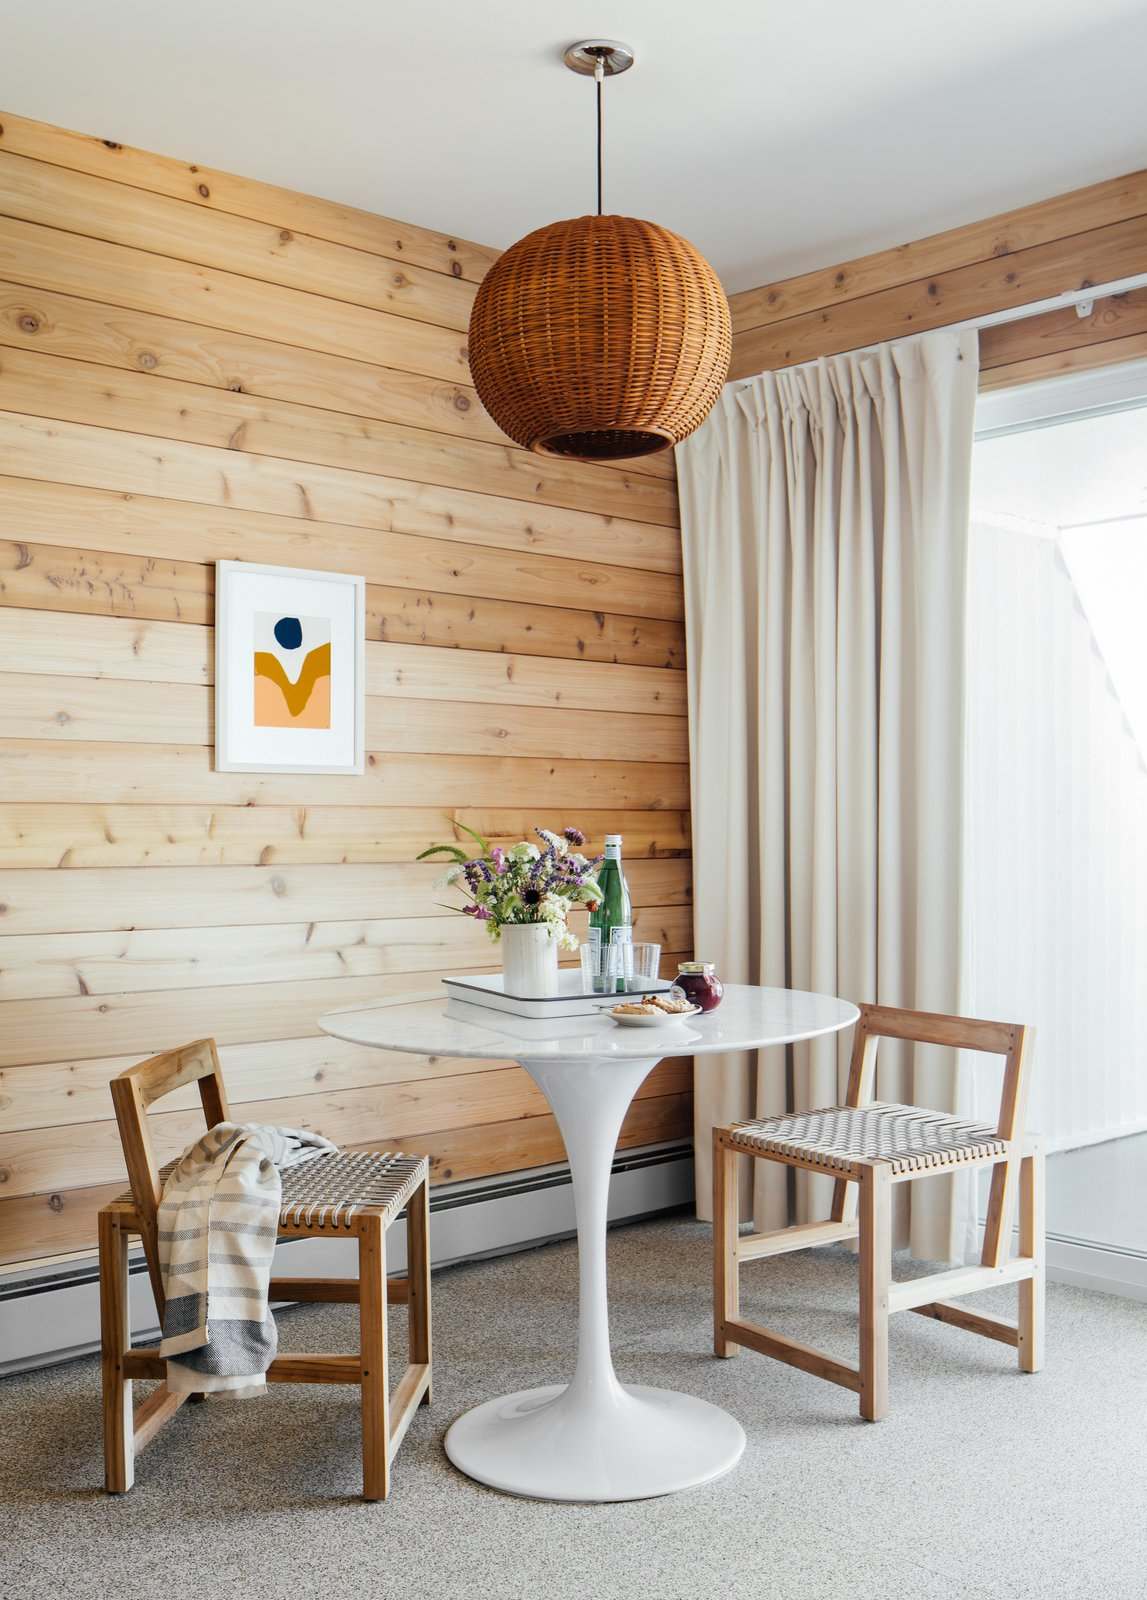 Dining Room, Chair, Table, Pendant Lighting, And Carpet Floor Photo 6 Of